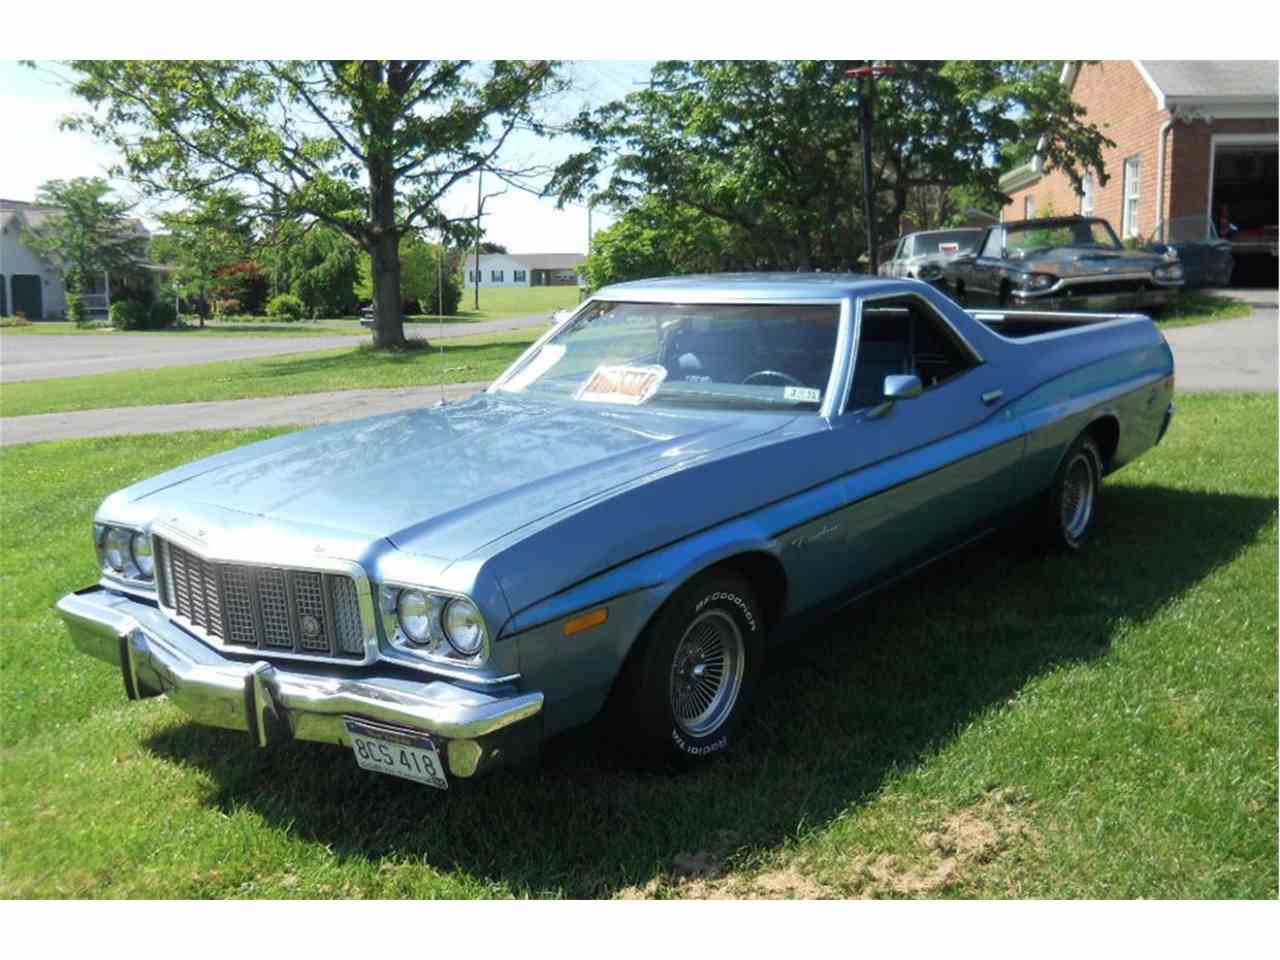 Large Picture of '74 Ford Ranchero located in West Virginia Offered by a Private Seller - BXKP